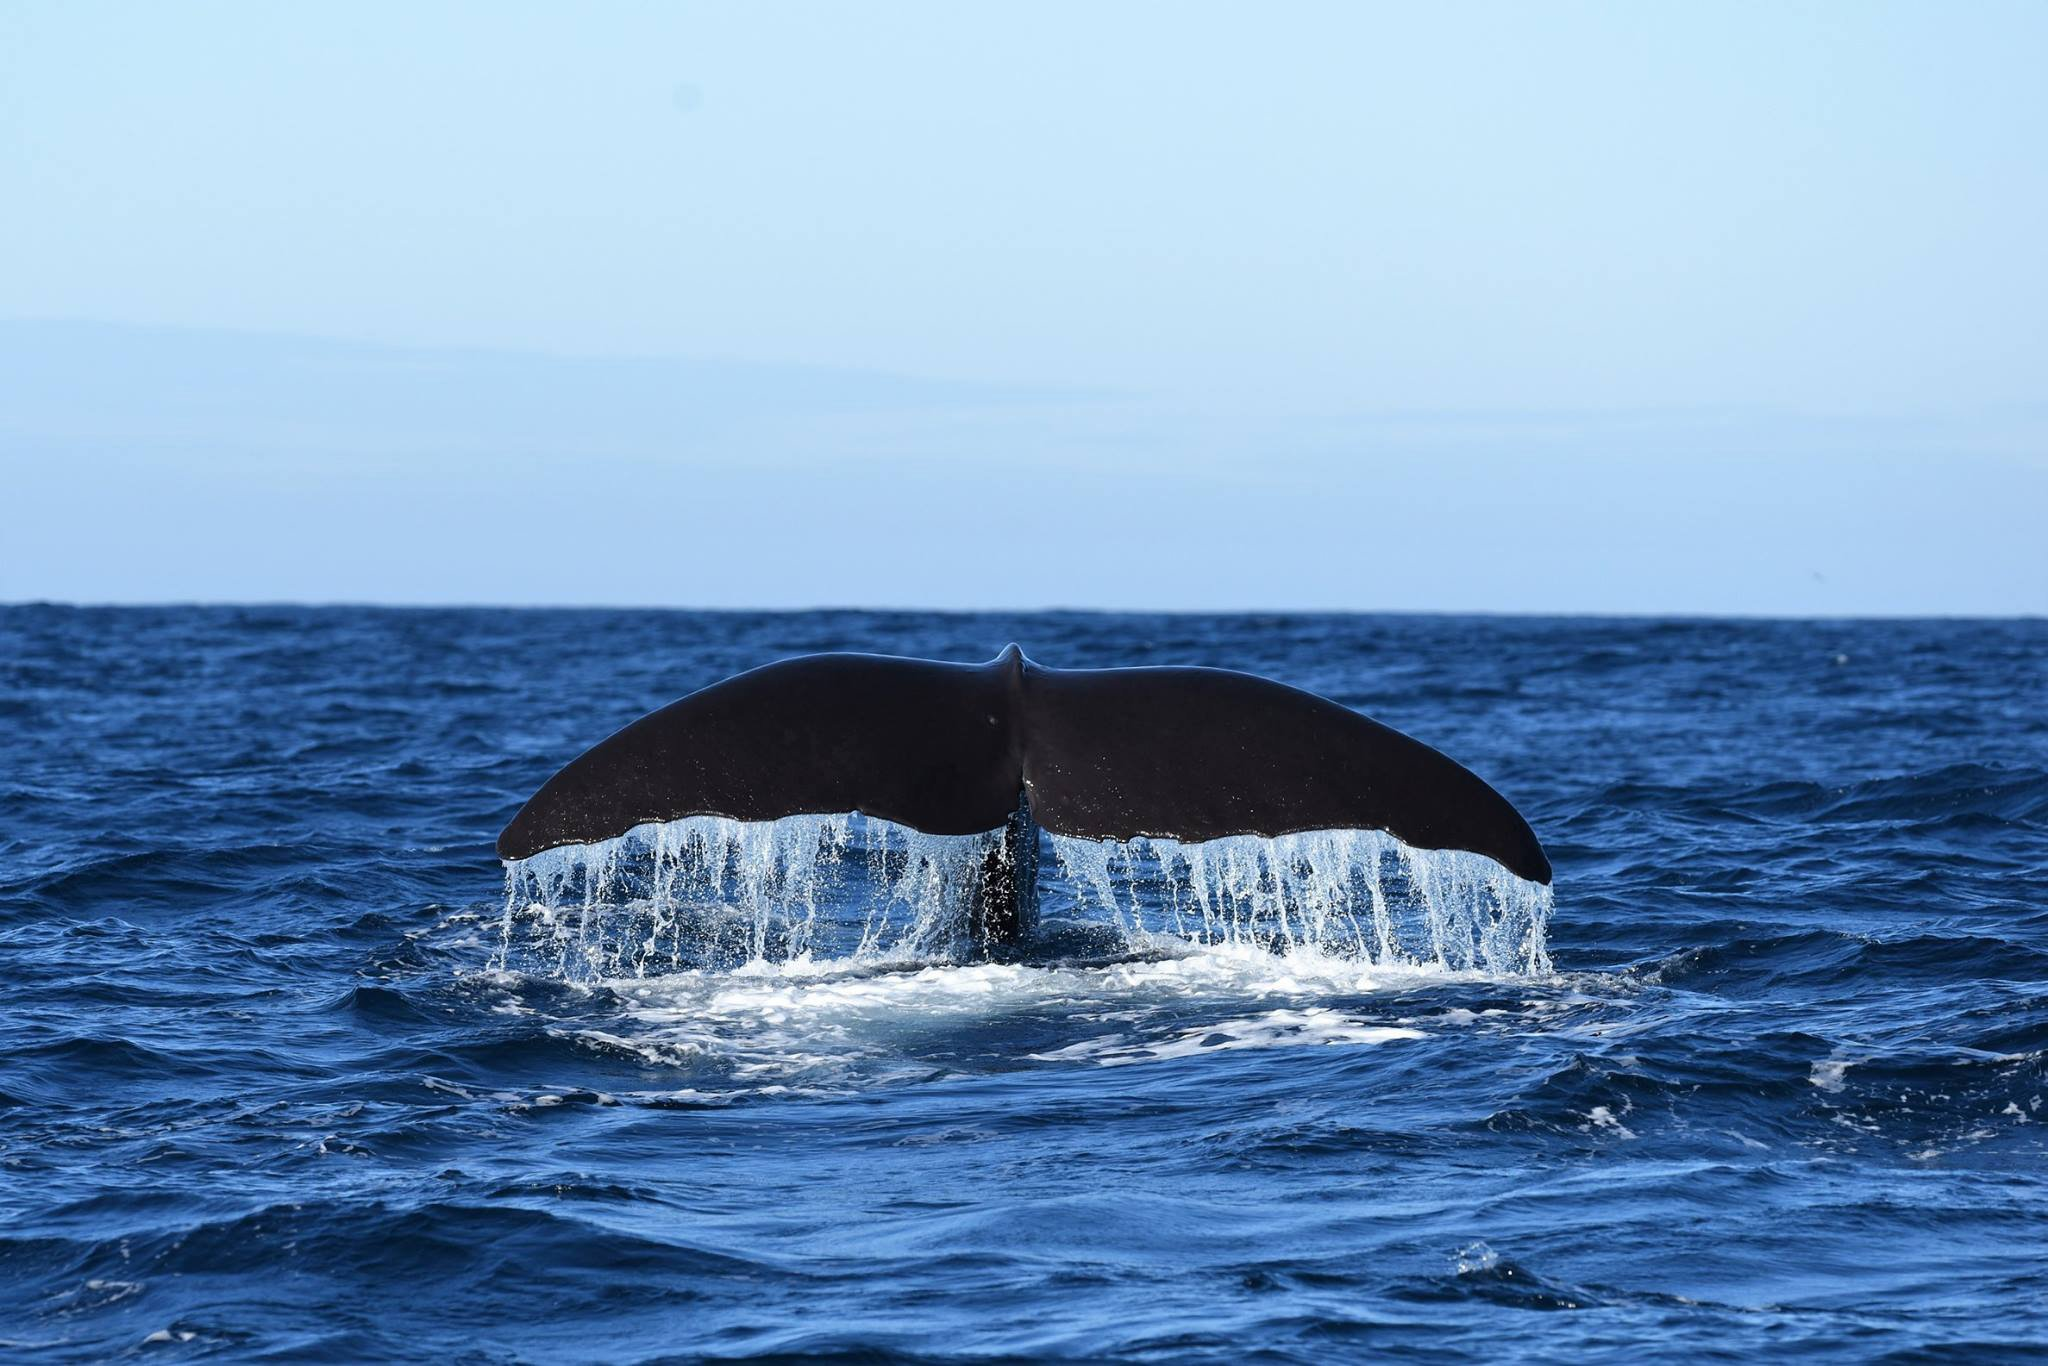 population of whales off dunedin coast significant study finds